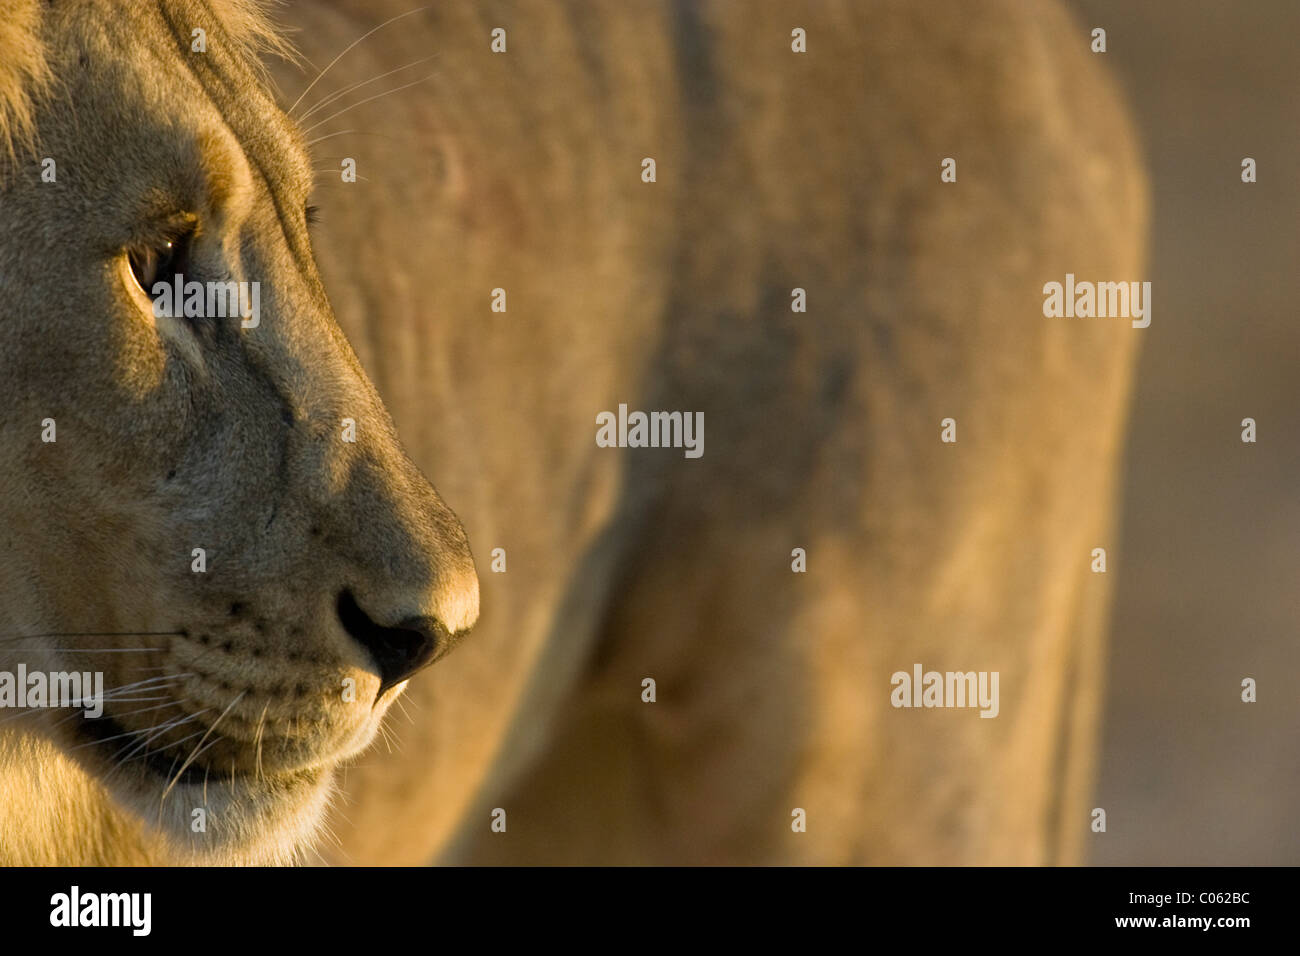 Lion portrait, Etosha National Park, Namibia - Stock Image